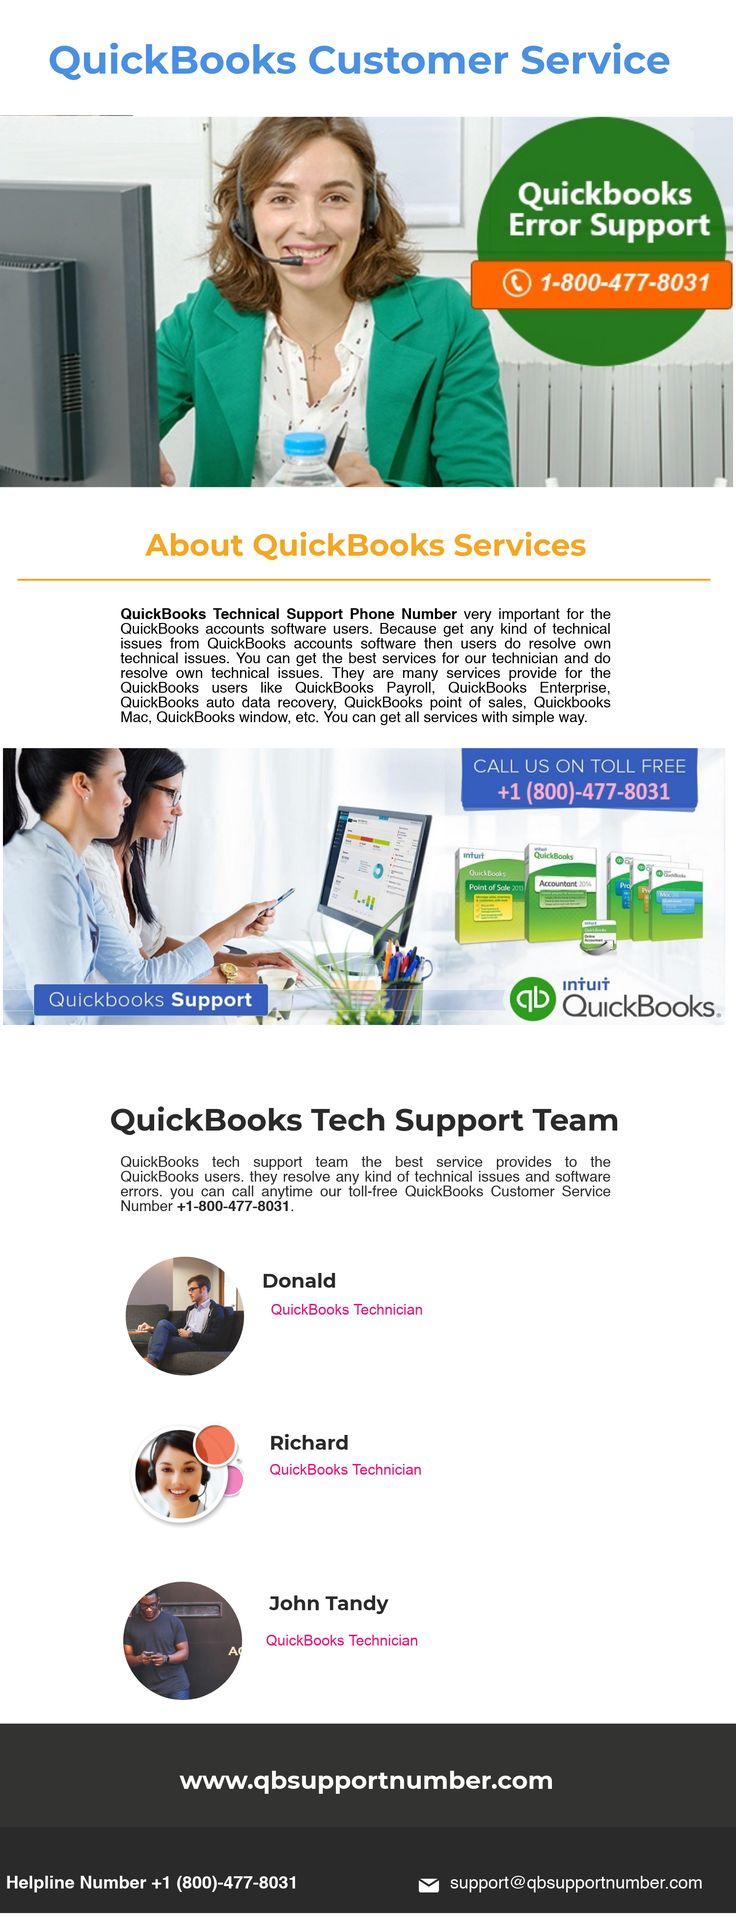 Talk to our QuickBooks Customer Support experts on toll free number +1-800-477-8031 and get all help you need with your QuickBooks business accounting software. You can also know about QuickBooks business accounting software but not know about technical errors then contact our QuickBooks expert team. Click for more info: https://www.qbsupportnumber.com/